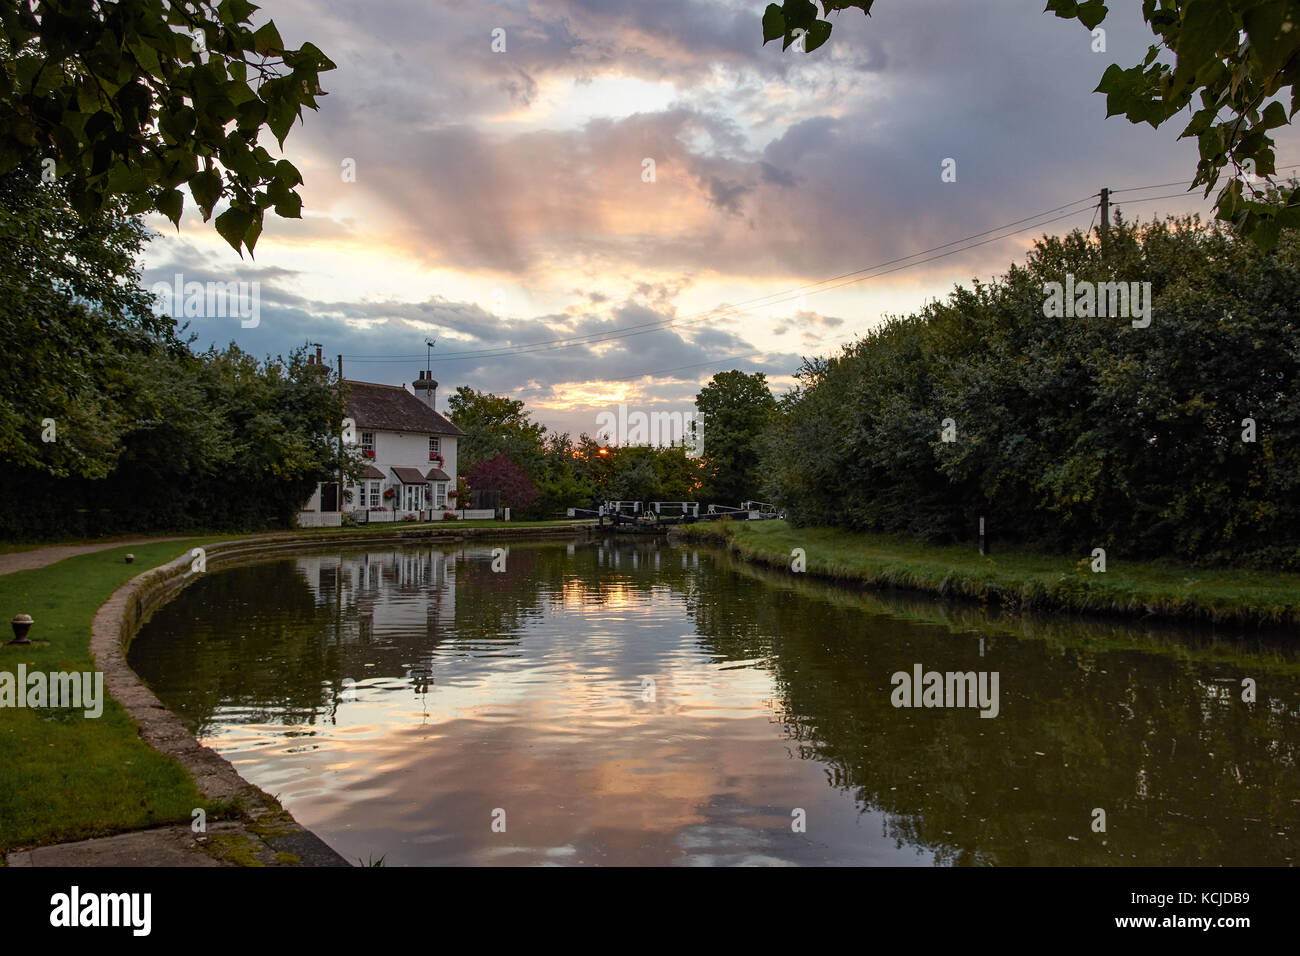 Grand Union Canal, Marsworth - Stock Image